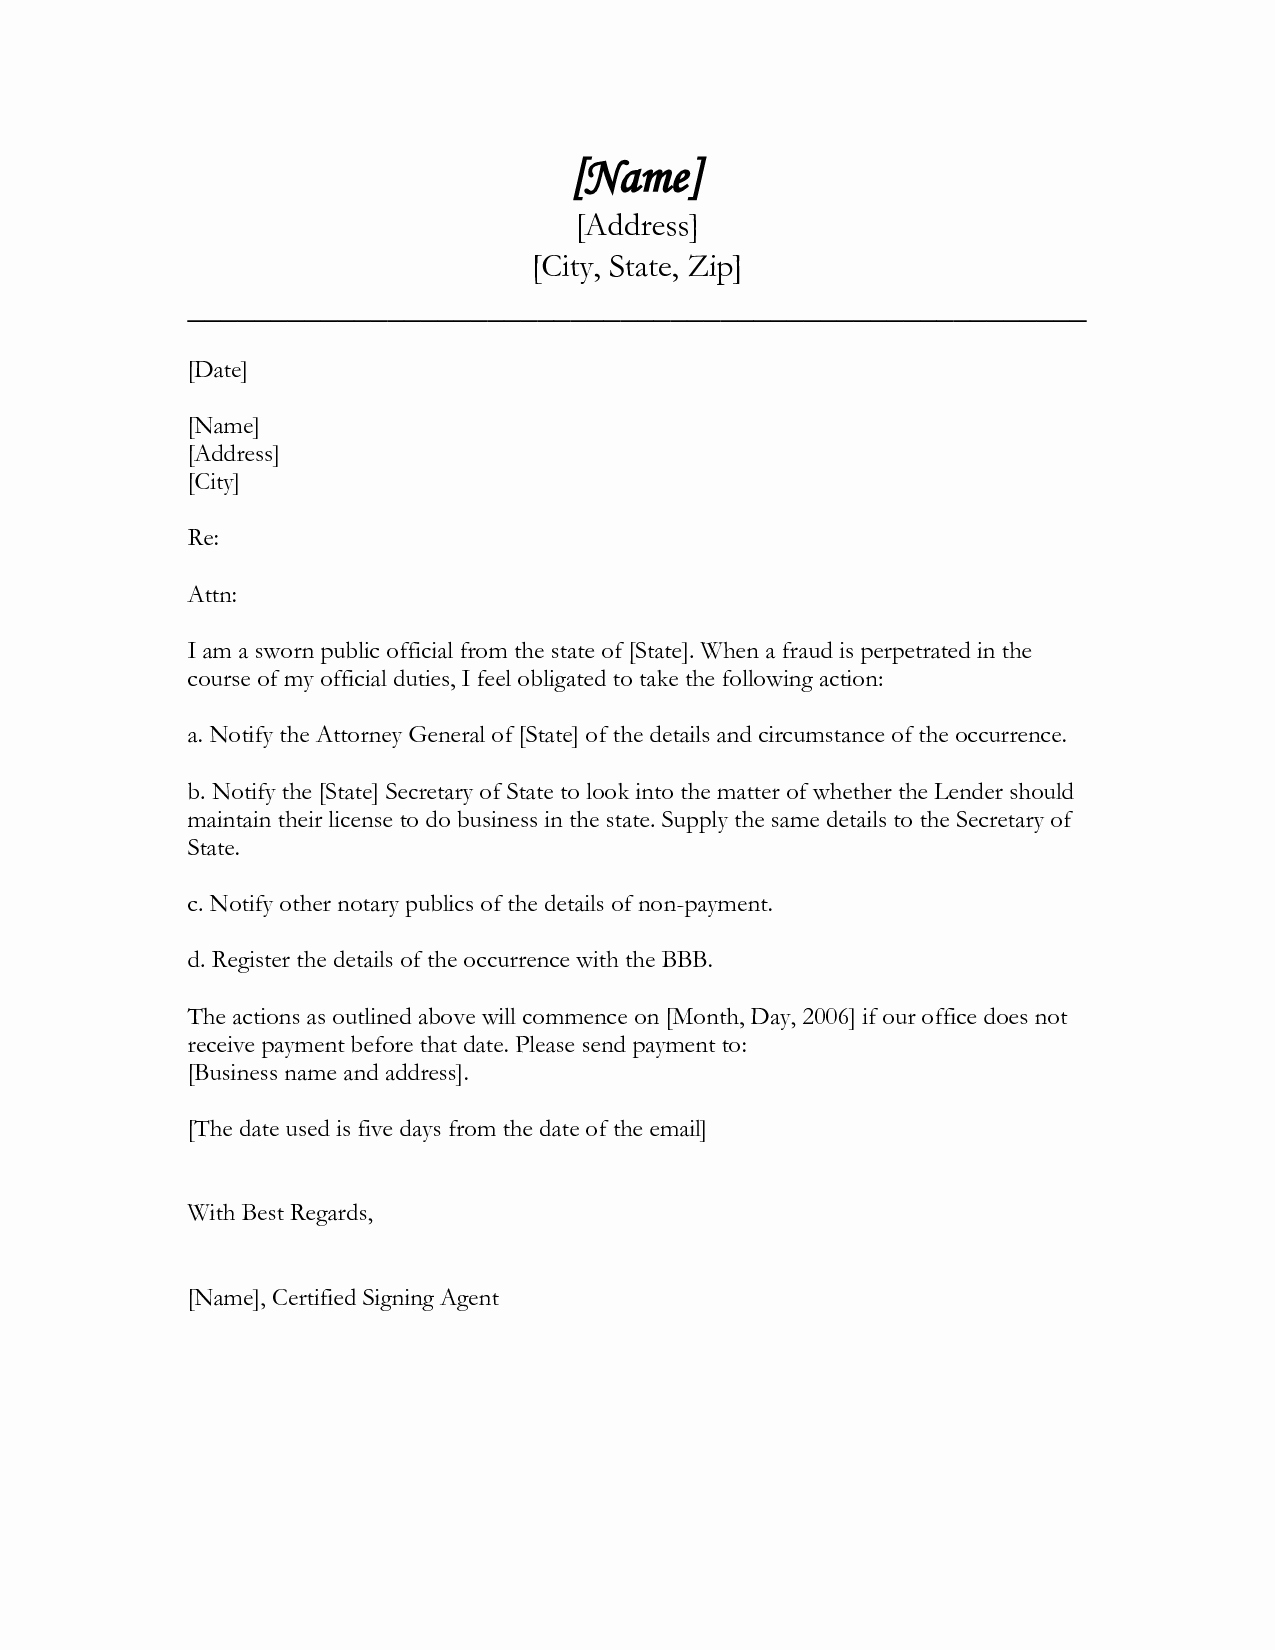 Free Business form Letter Template Good Example Best